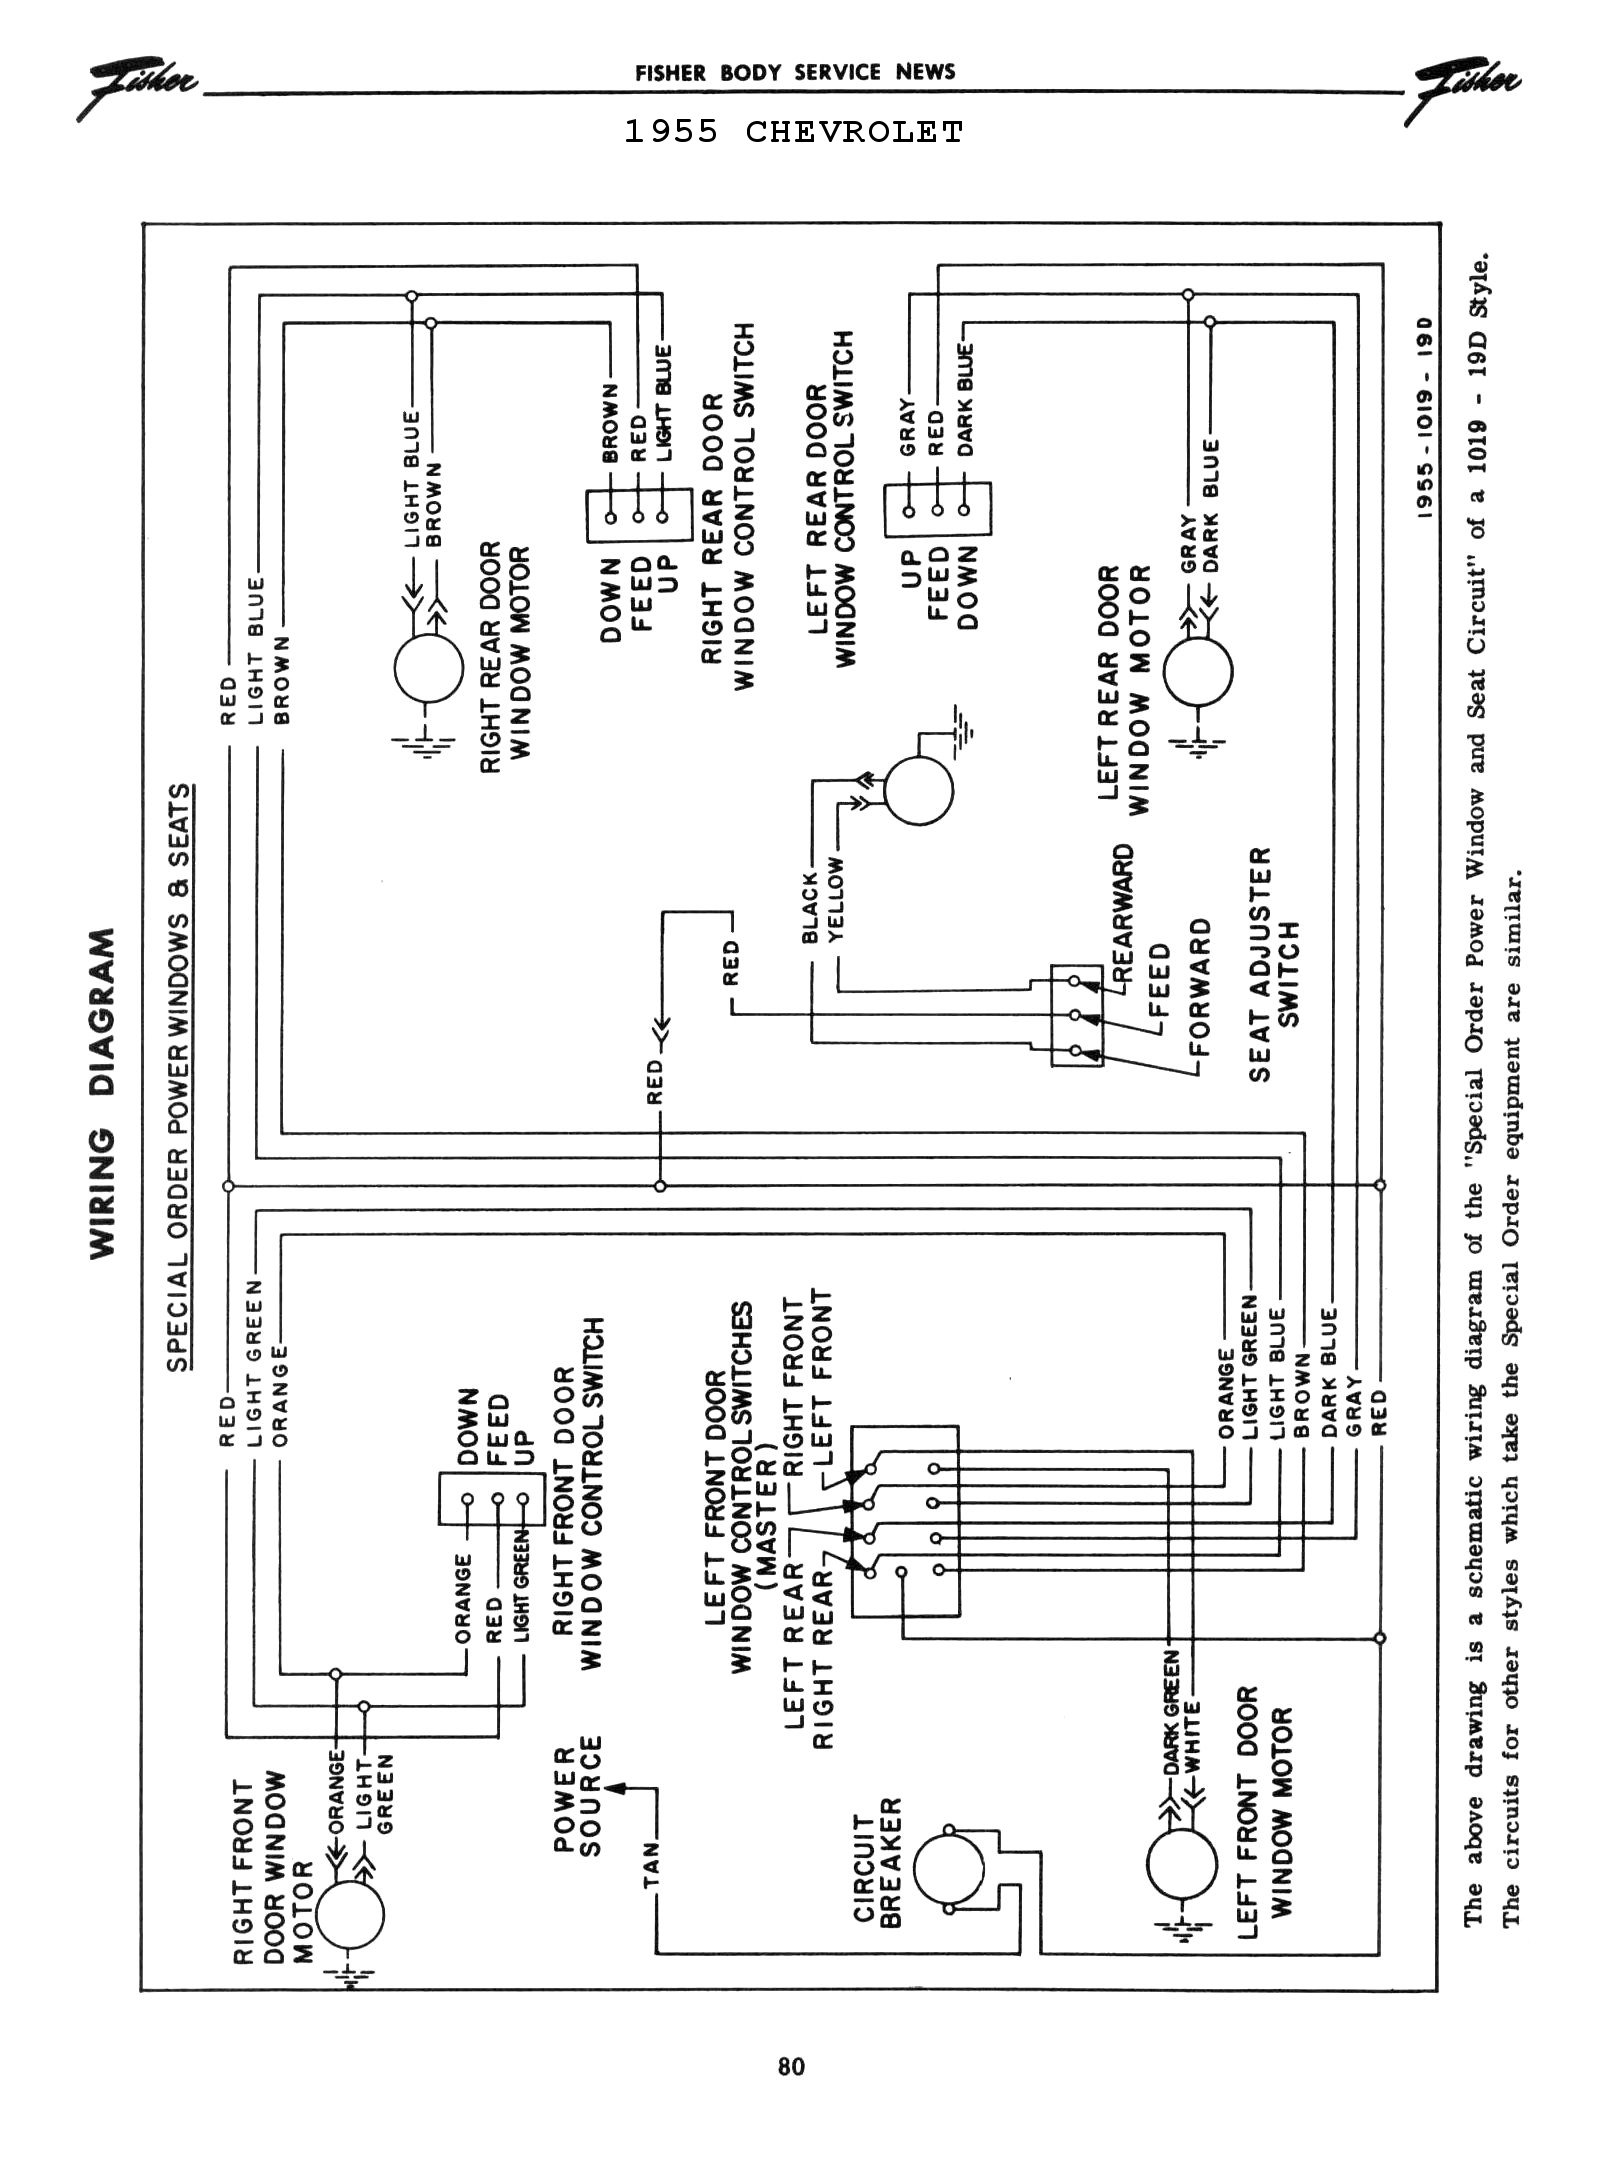 Wiring Diagram Vehicle : Ignition switch wiring question archive trifive